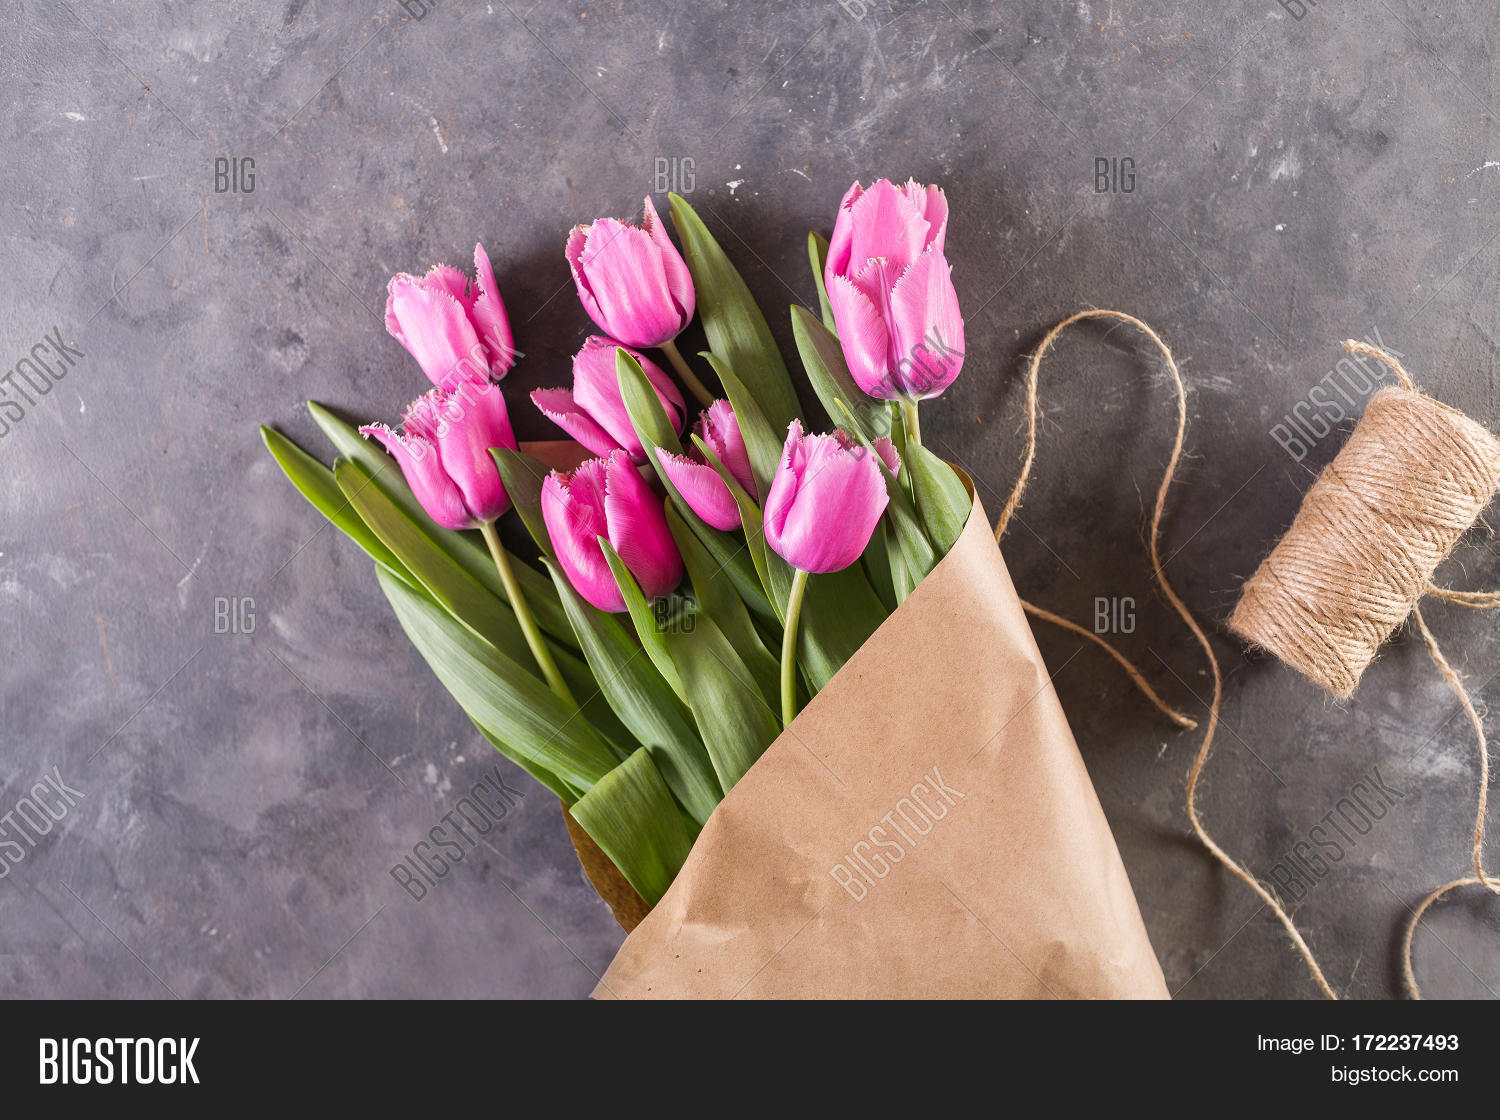 Pink Tulips Package Image Photo Free Trial Bigstock